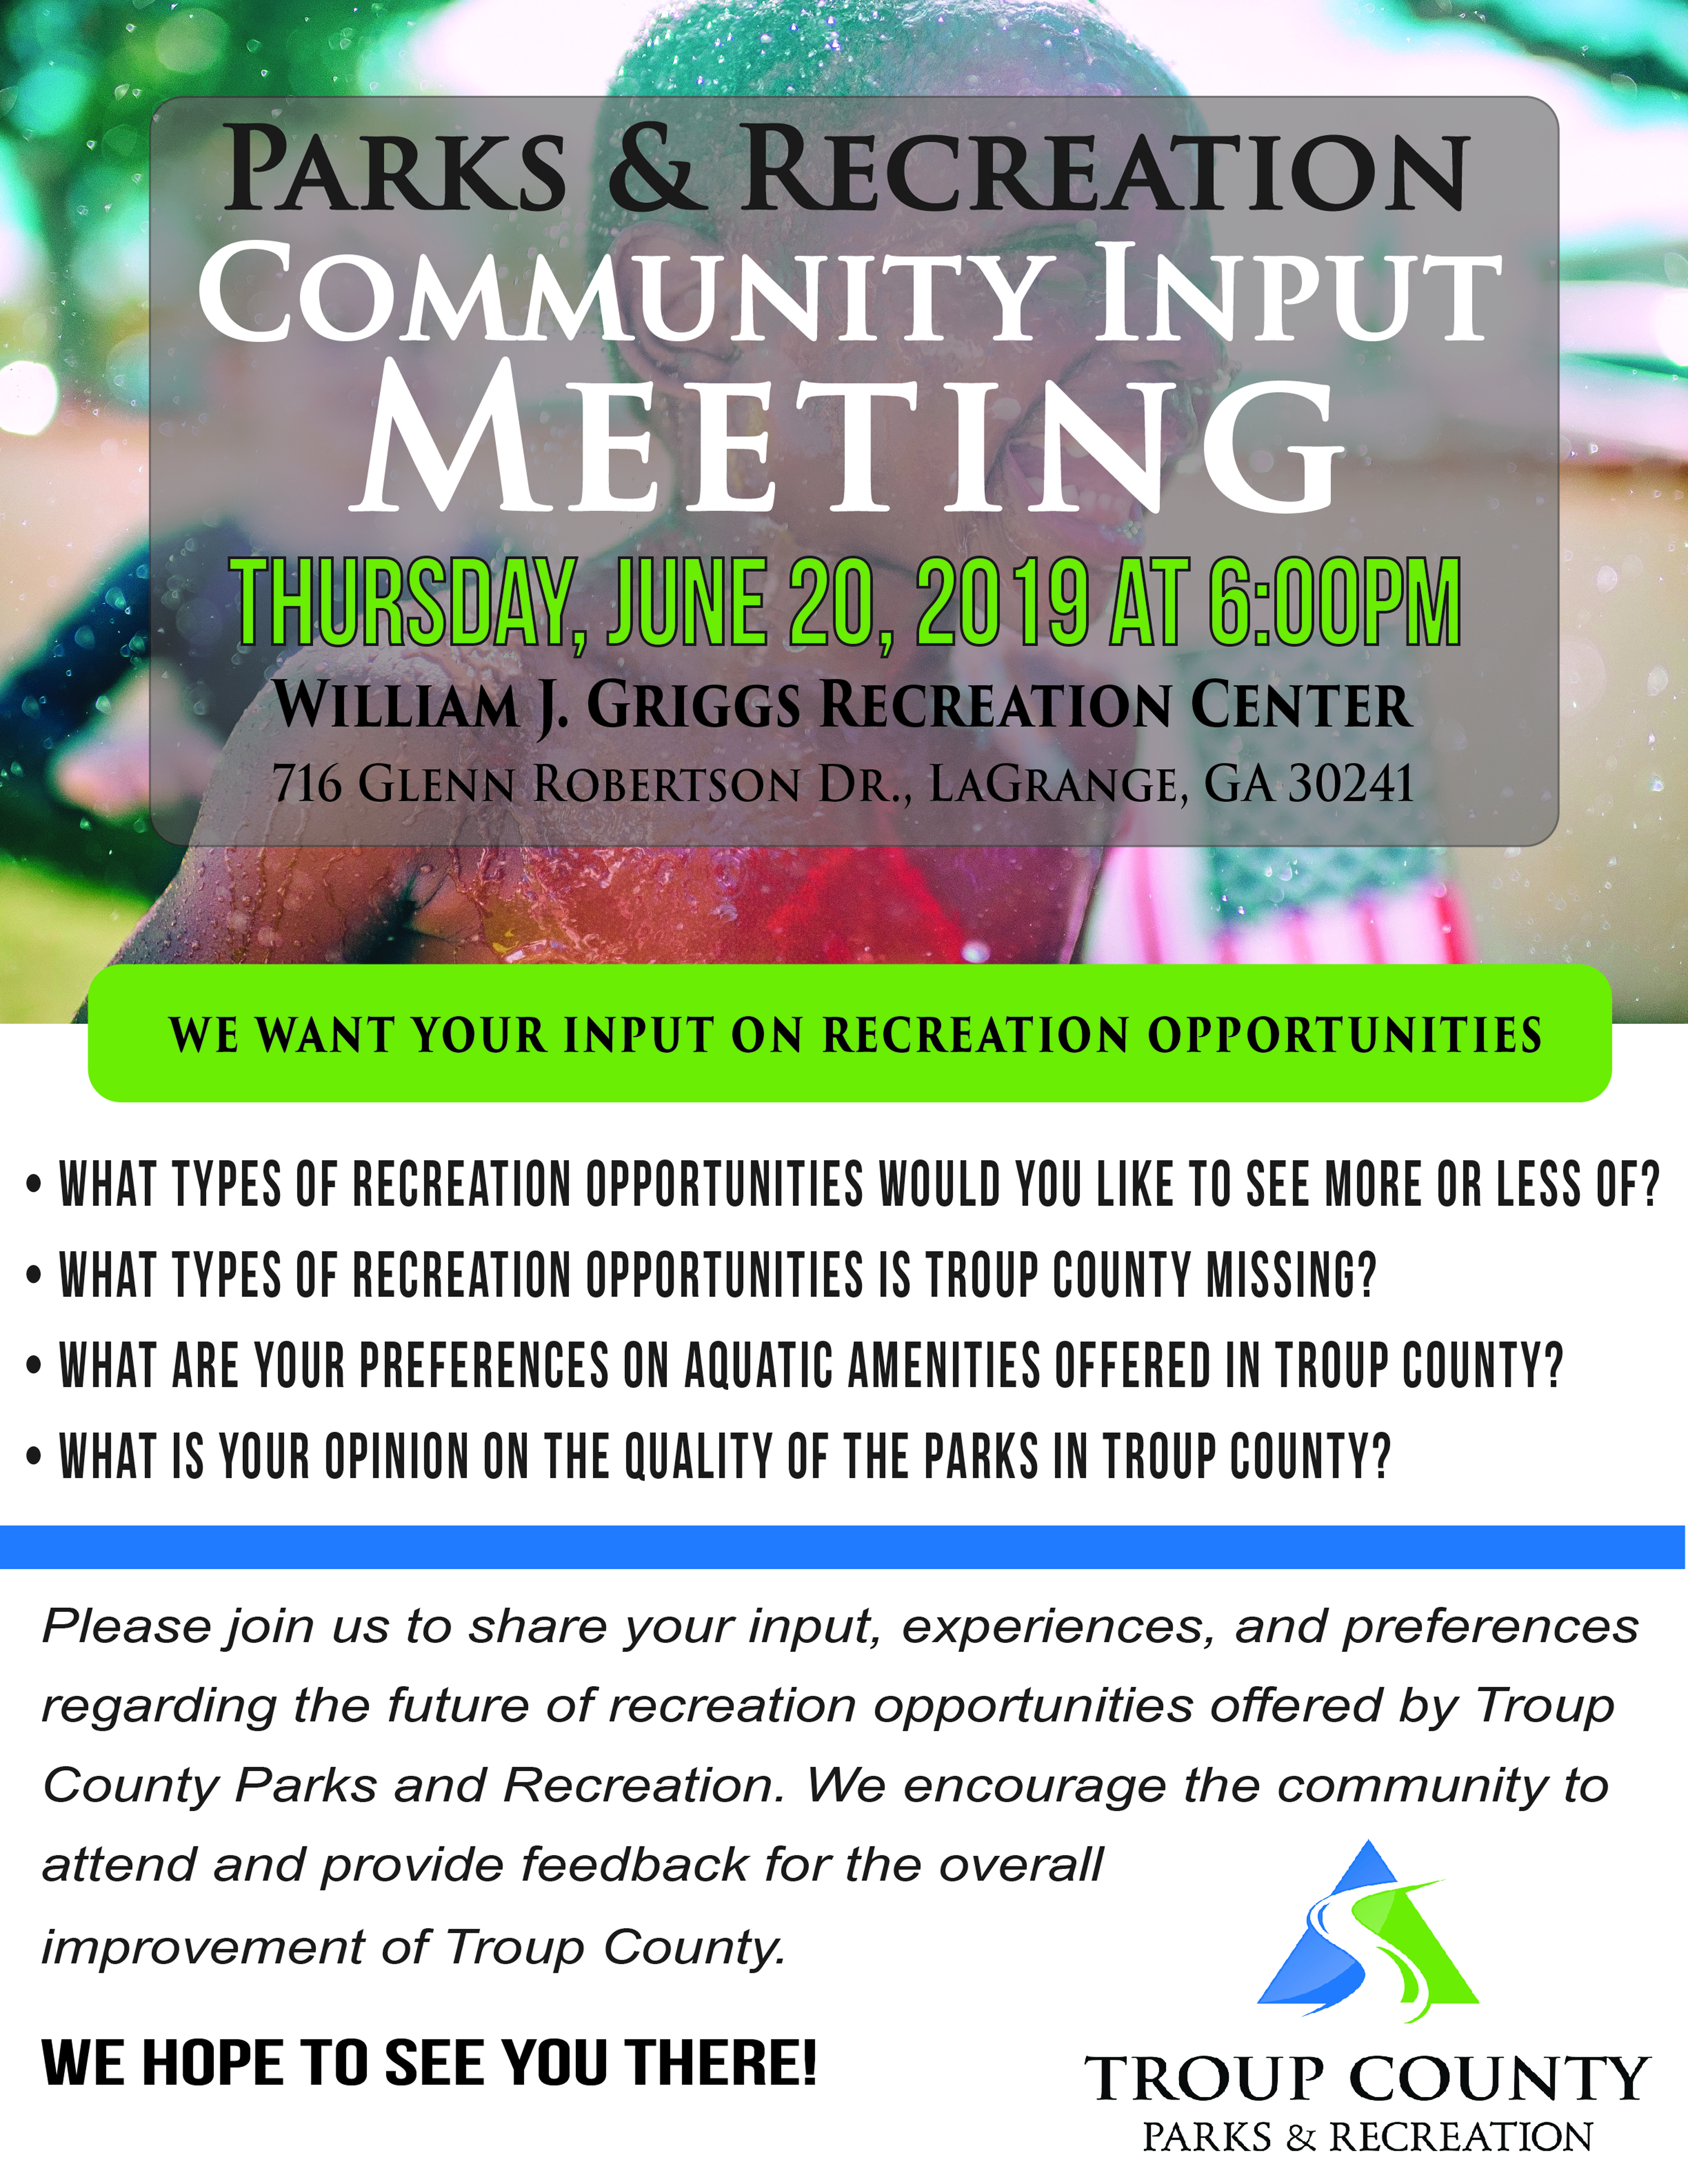 Community Input Meeting flyer